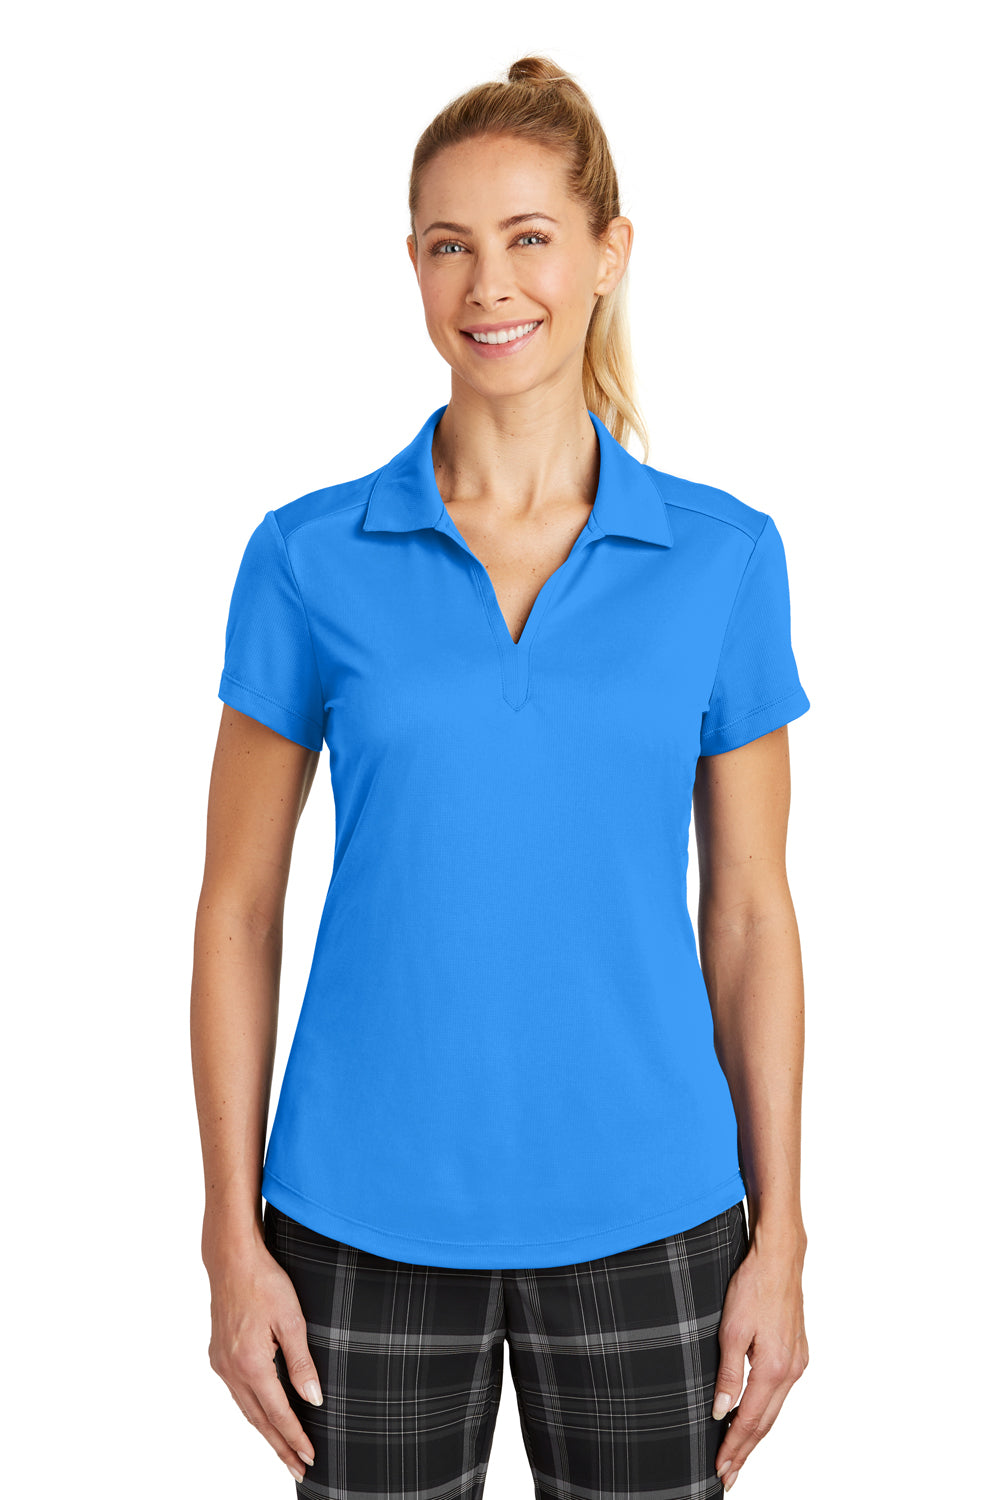 Nike 838957 Womens Legacy Dri-Fit Moisture Wicking Short Sleeve Polo Shirt Photo Blue Front